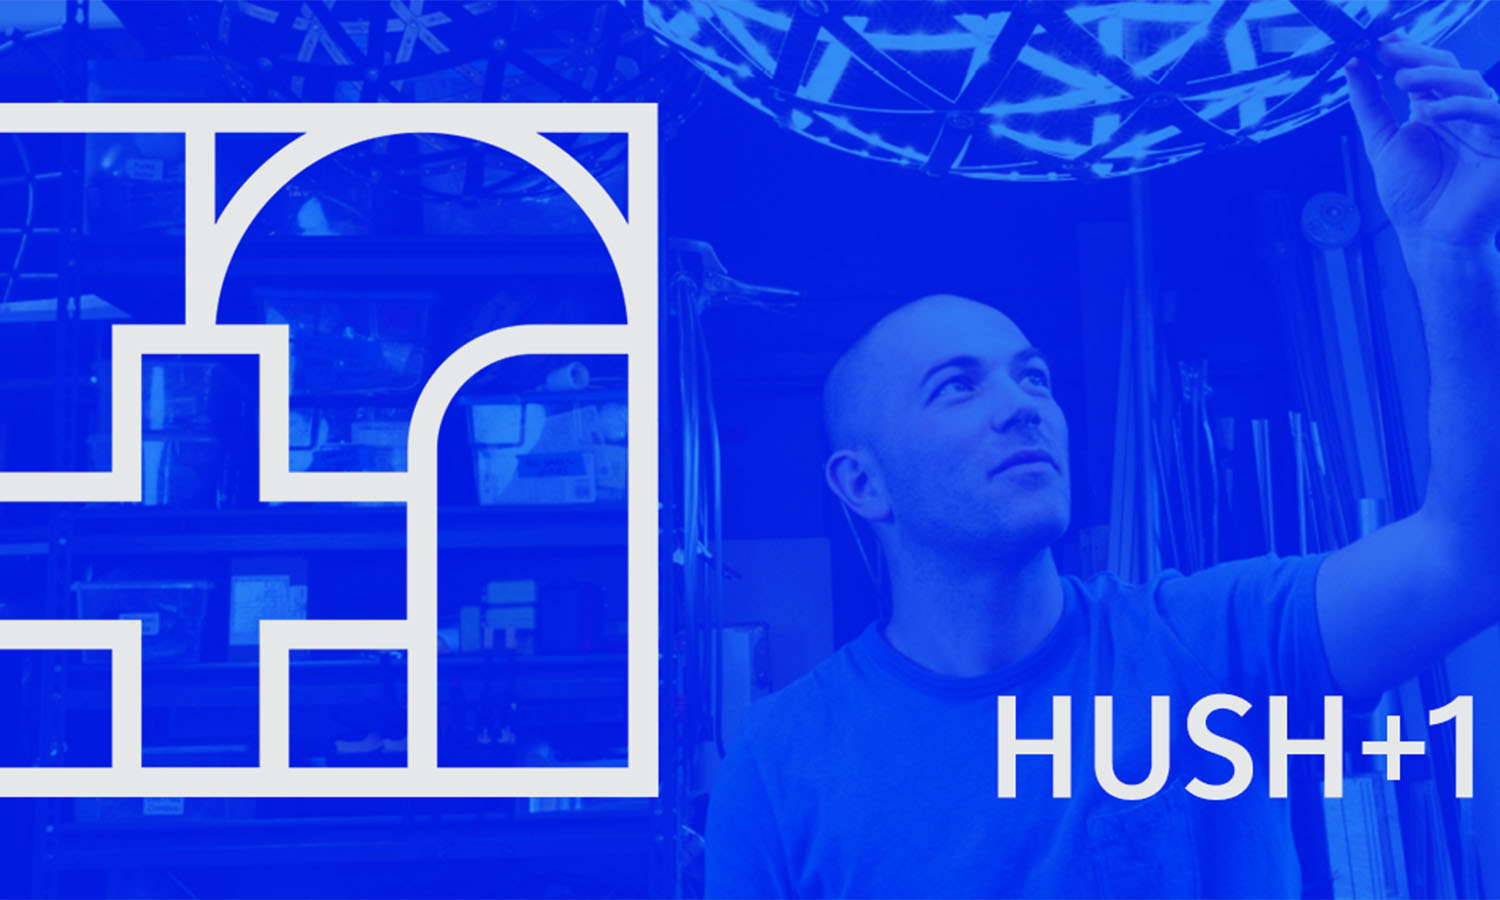 HUSH+1 is a podcast for makers, by makers.